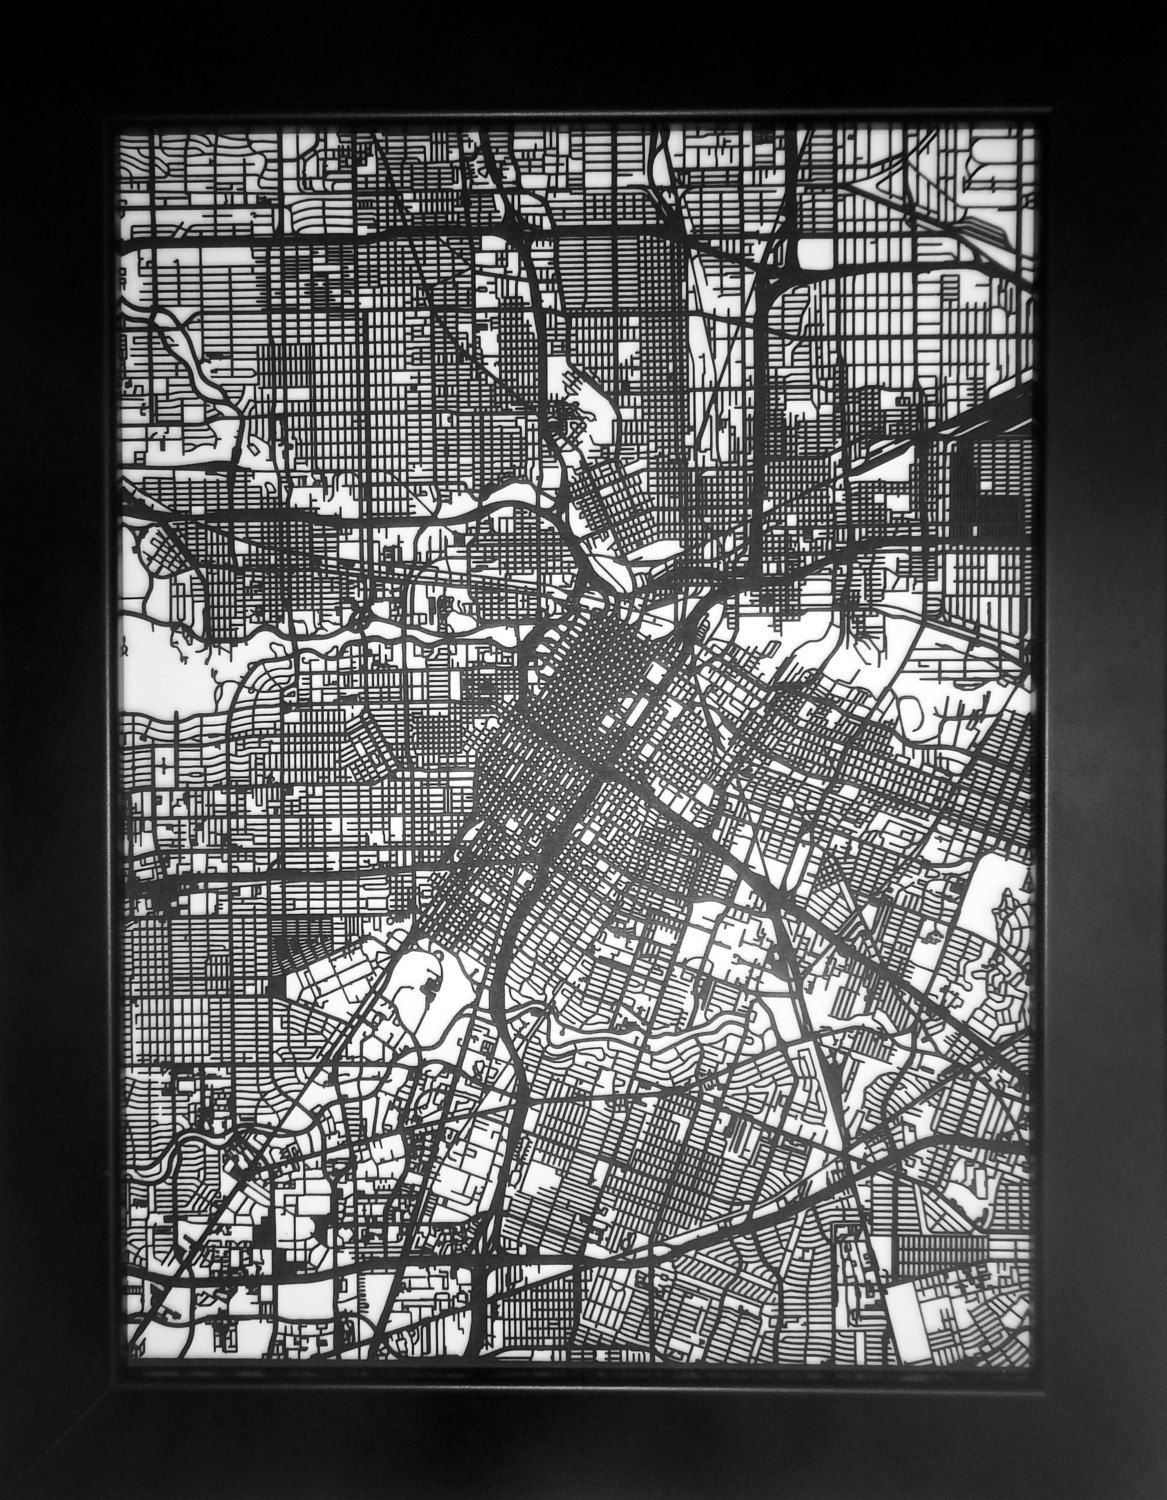 Houston Texas laser cut street map modern art by CarbonLight, $65.00